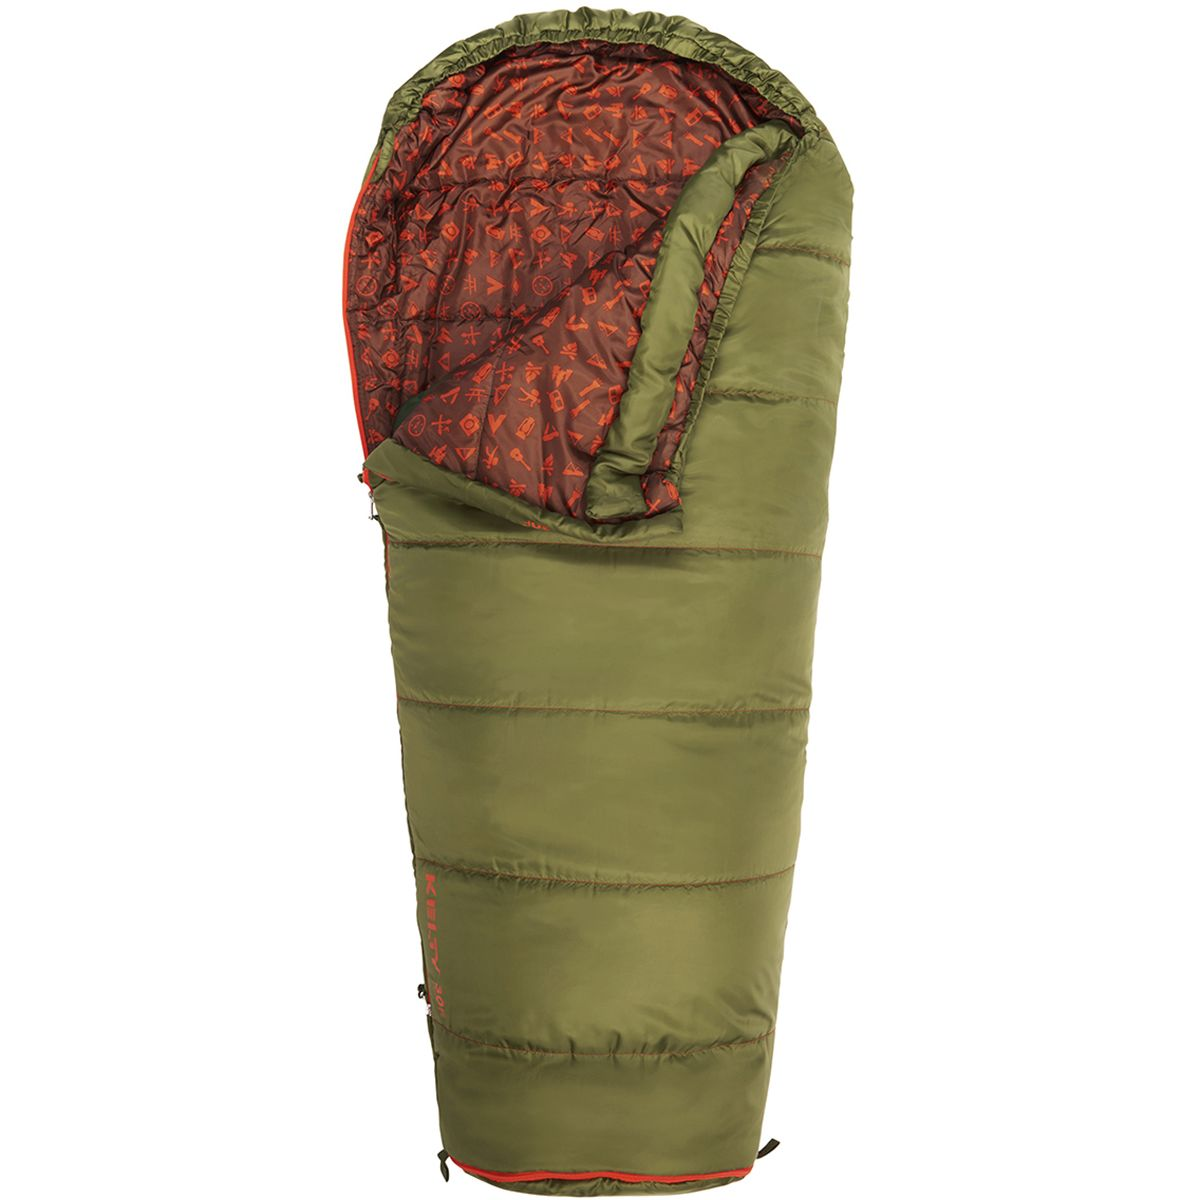 Kelty Big Dipper 30 Sleeping Bag: 30 Degree Synthetic - Kids' Avocado, Short/Right Zip